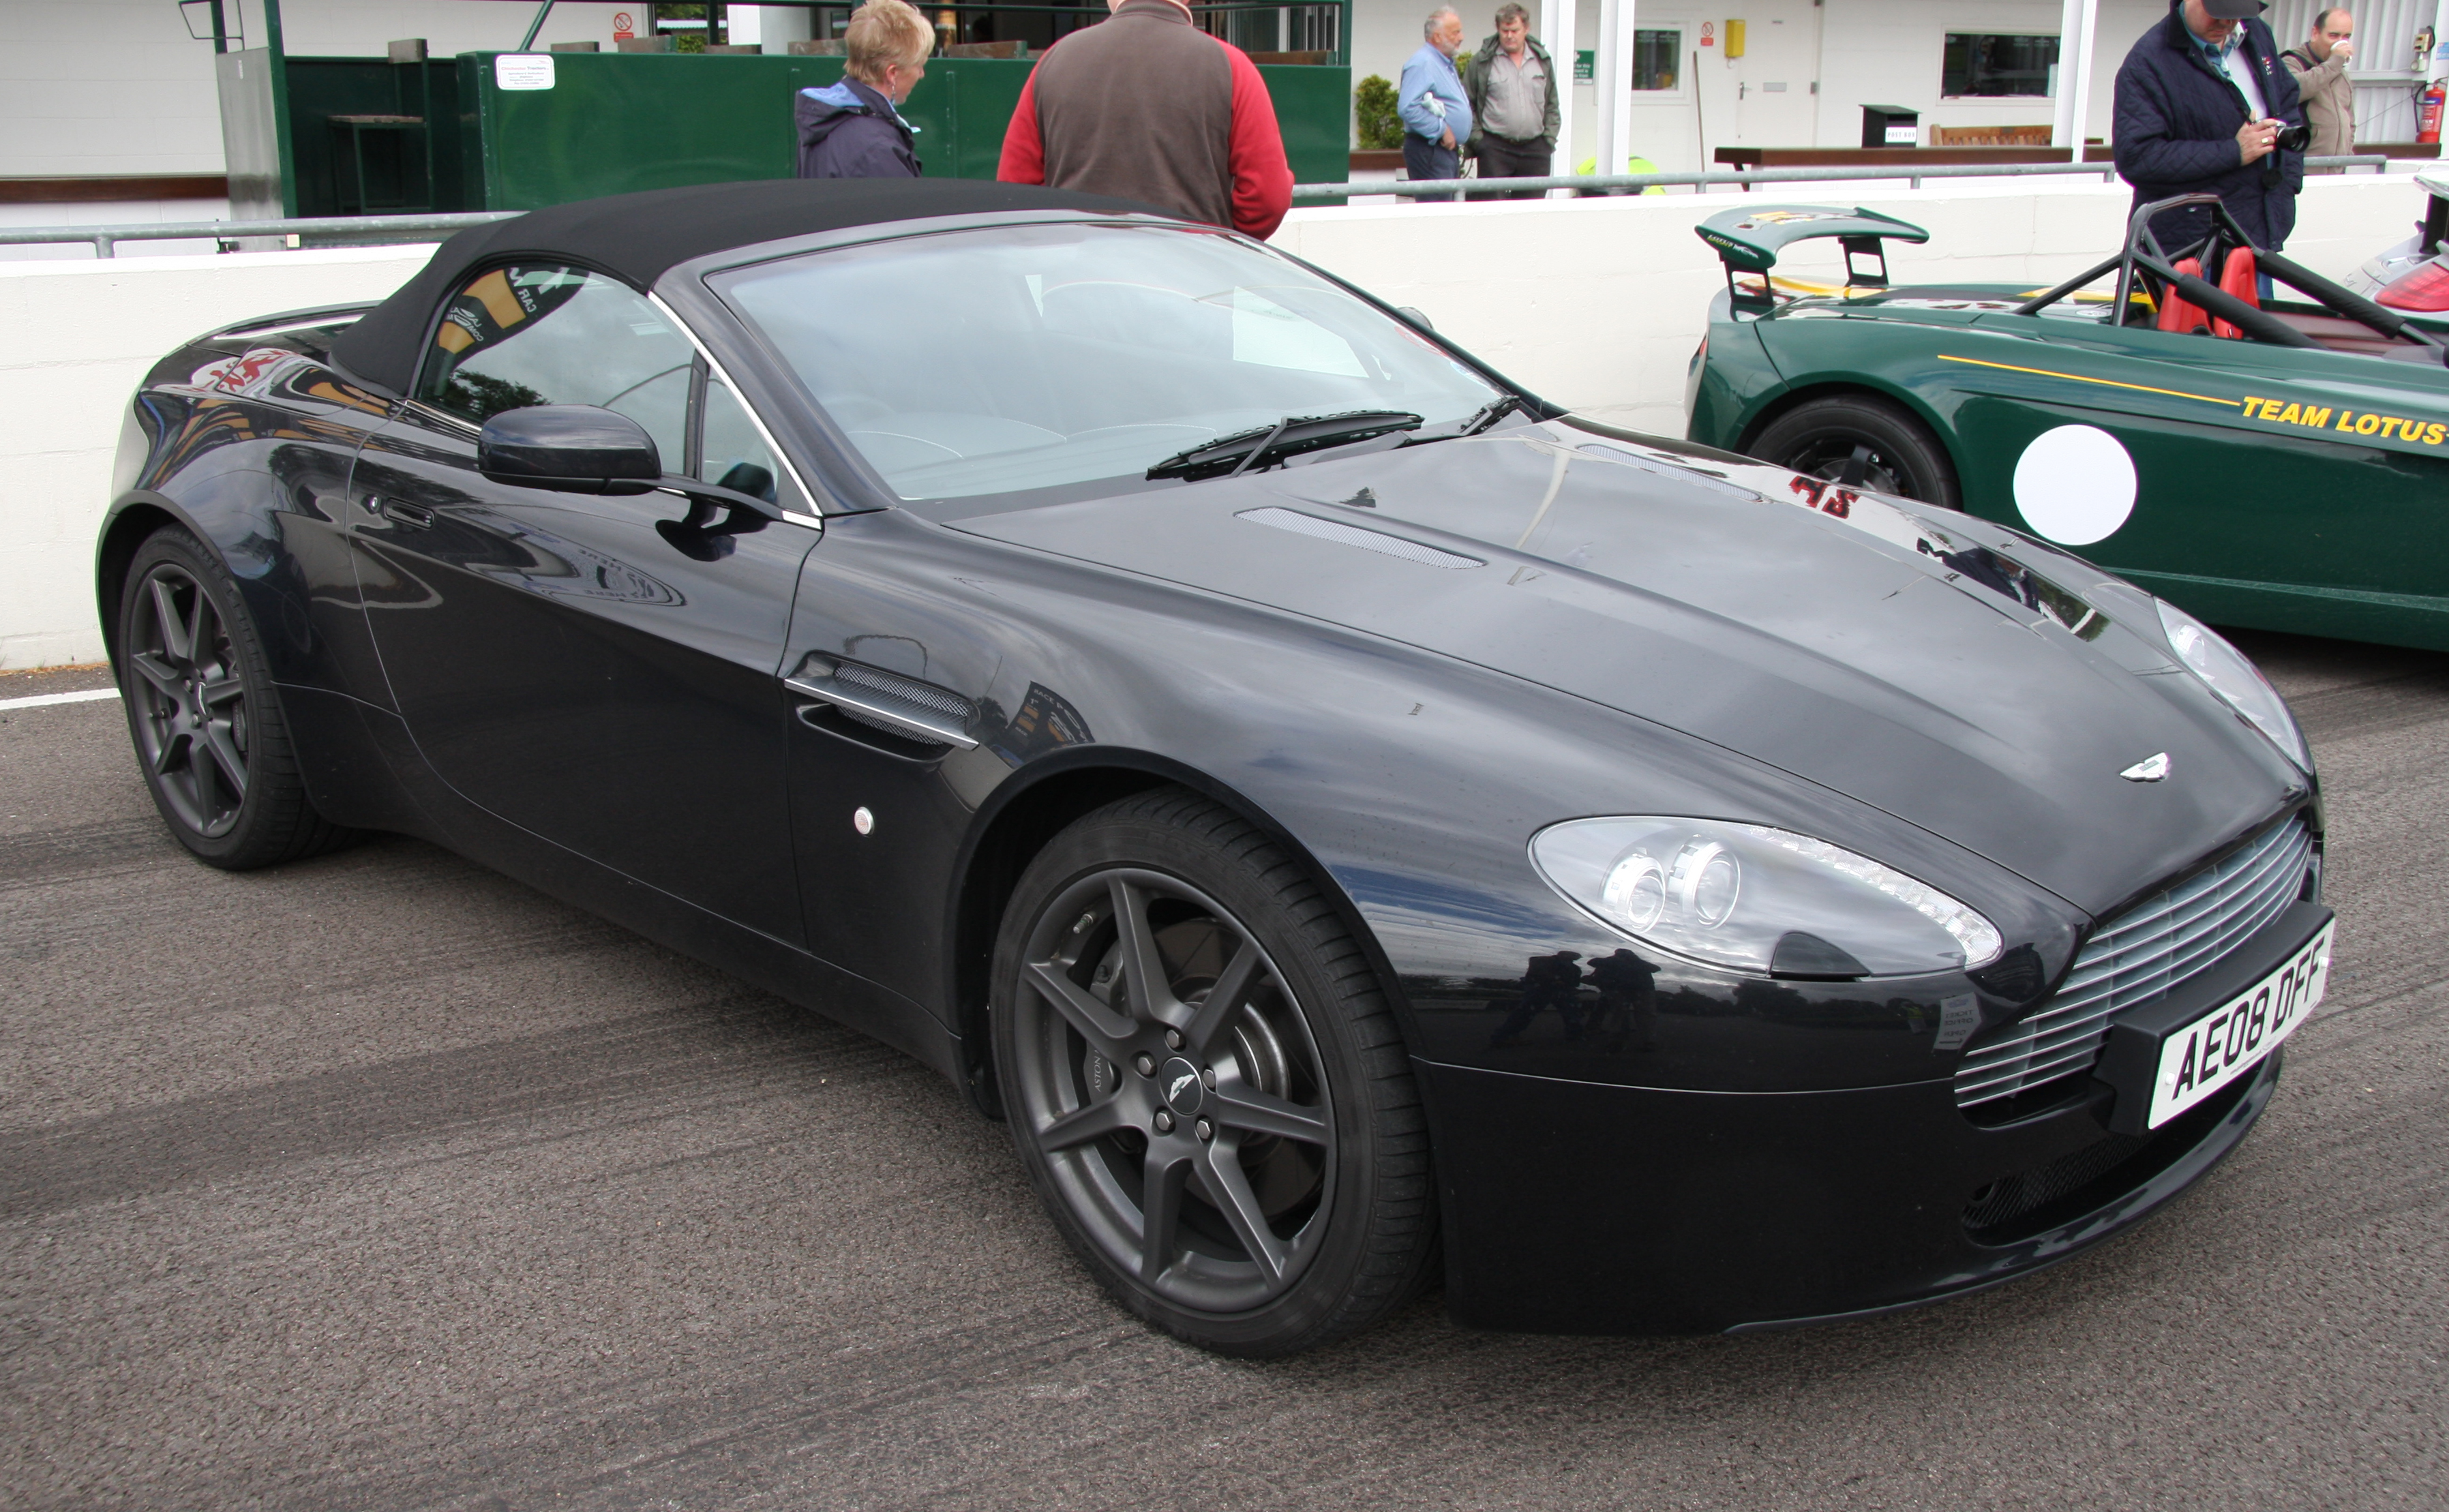 File Aston Martin V8 Vantage Roadster Flickr Exfordy Jpg Wikimedia Commons